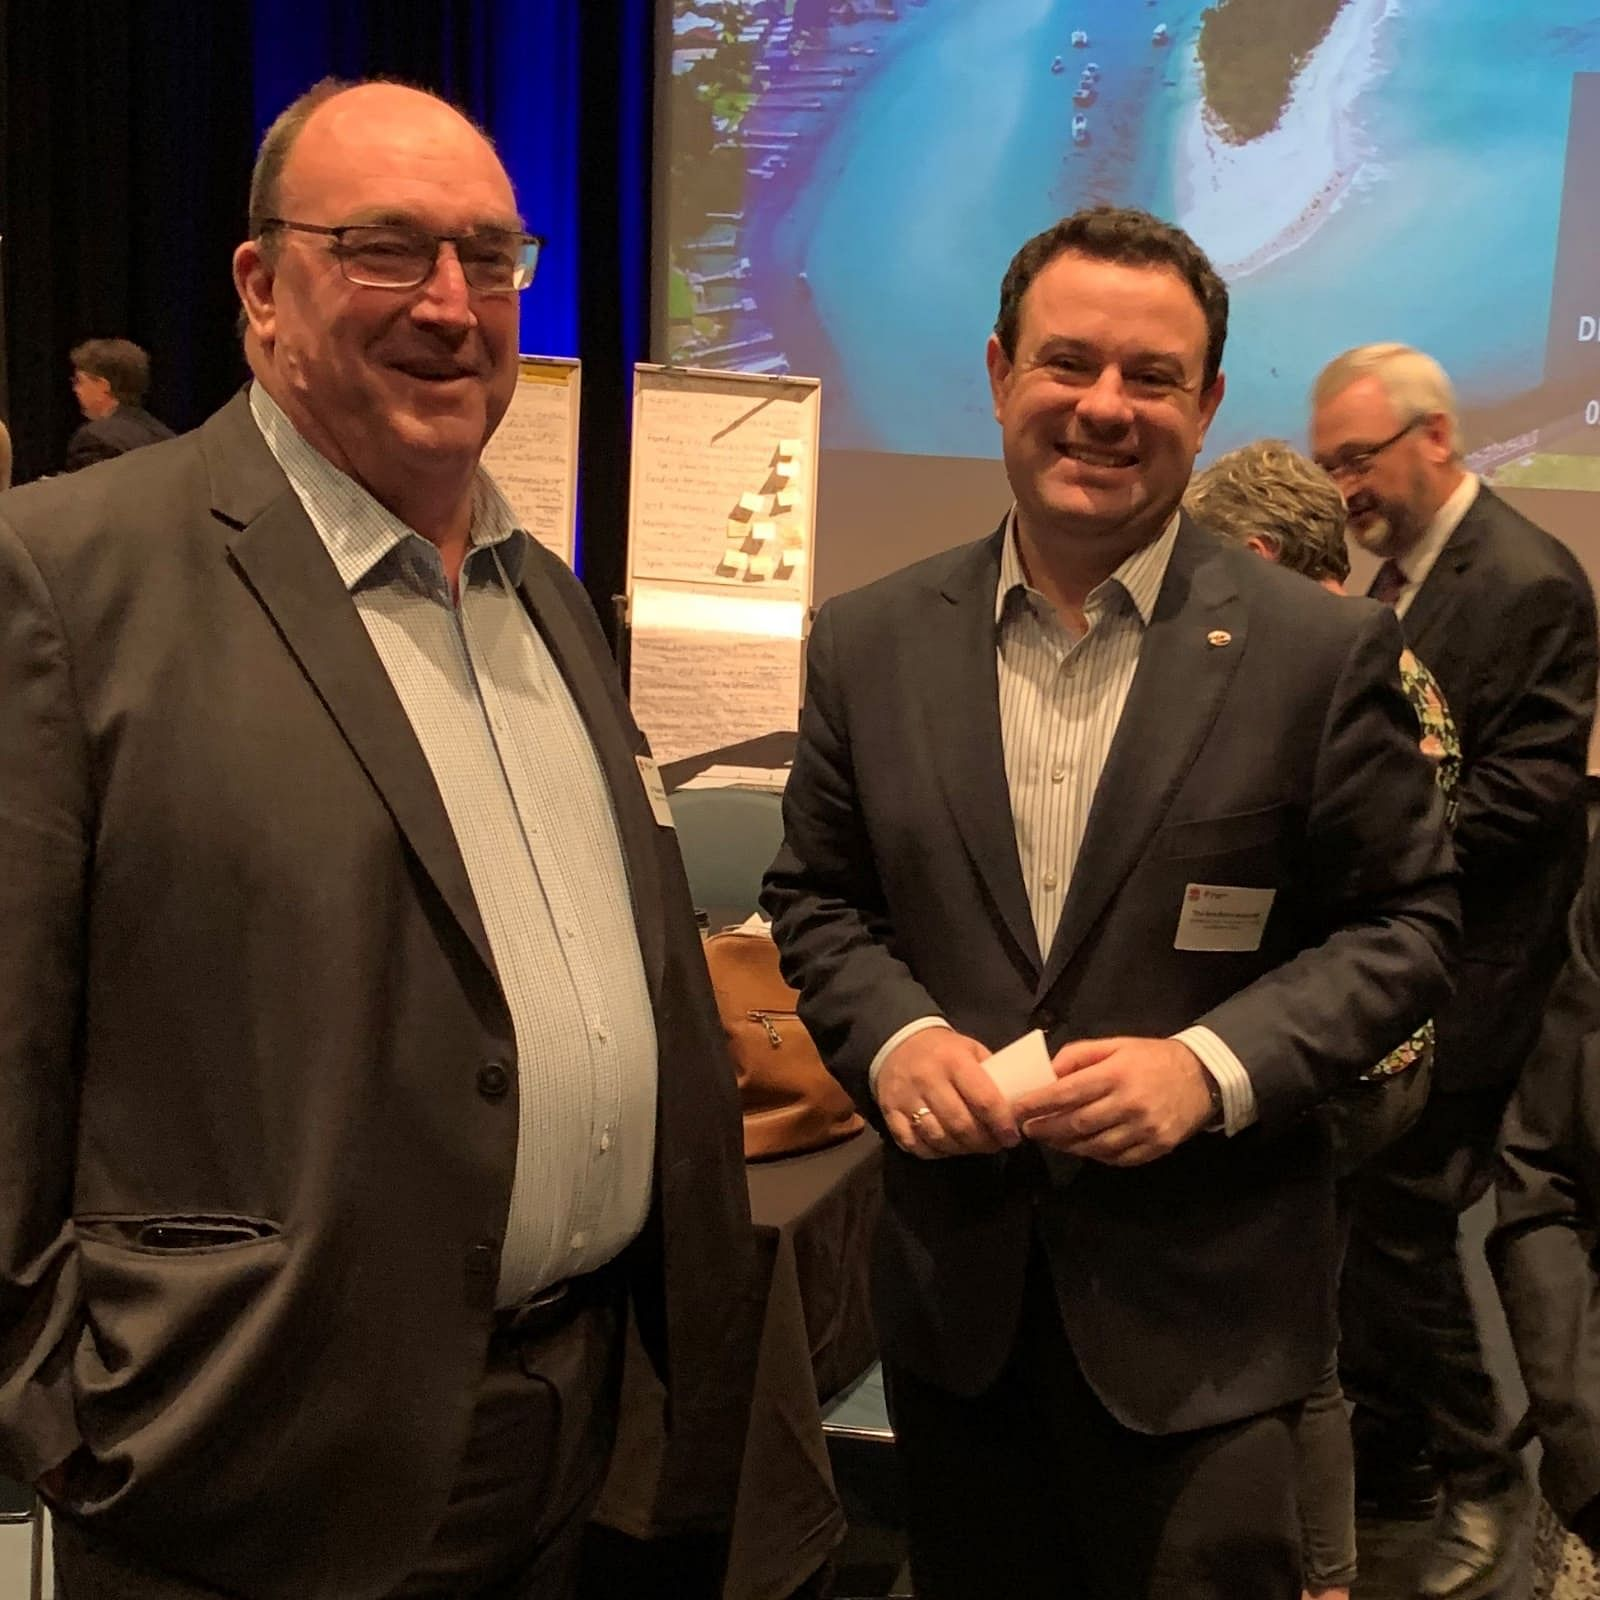 Bega Valley Shire Council Mayor Cr Russell Fitzpatrick discussing the local tourism industry with the NSW Tourism Minister, the Hon Stuart Ayres.